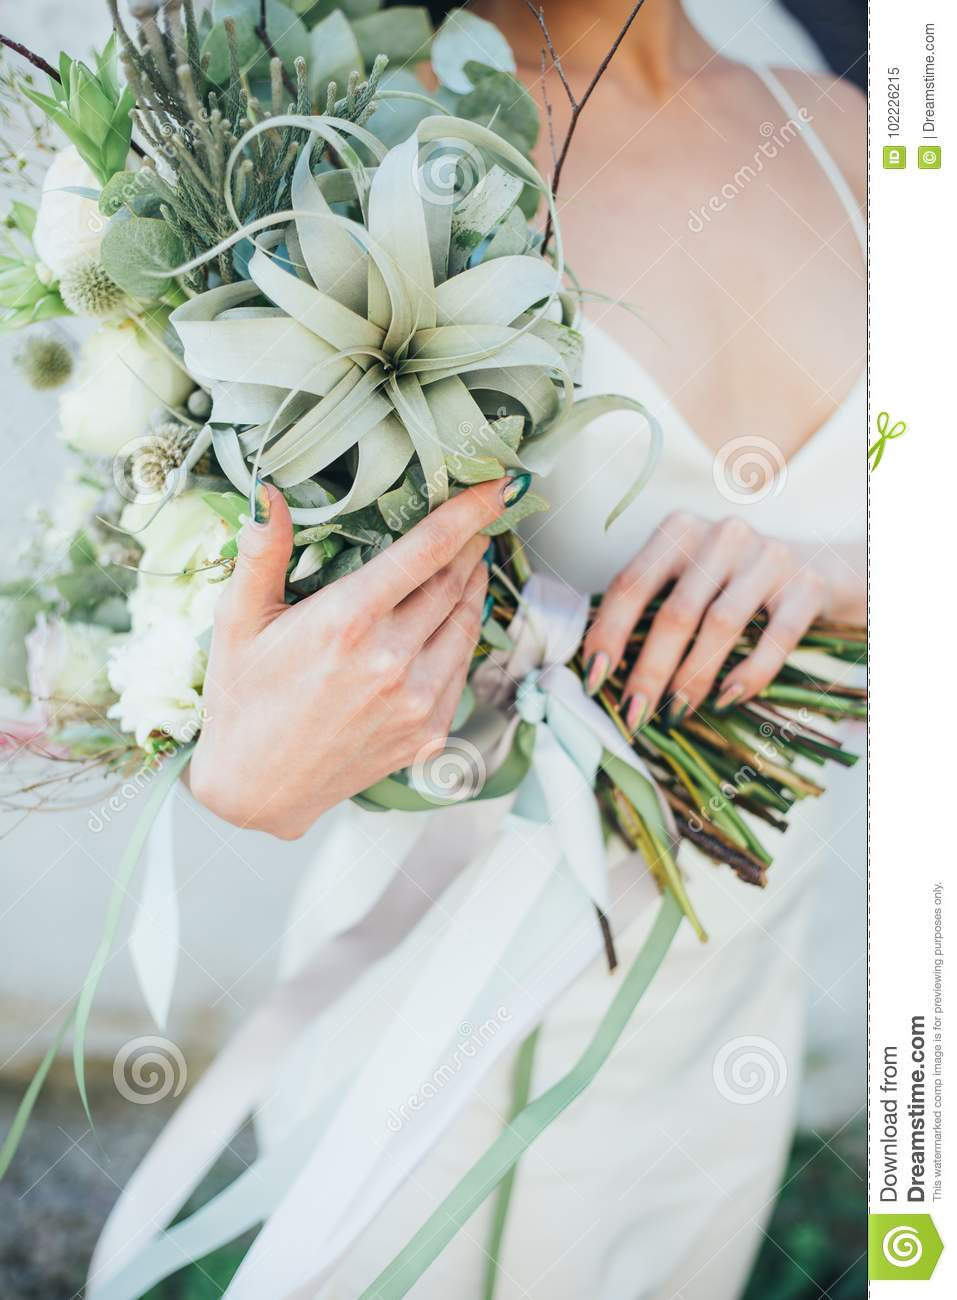 Bouquet with fresh flowers in hand stock image image of birthday bouquet with fresh flowers in hand izmirmasajfo